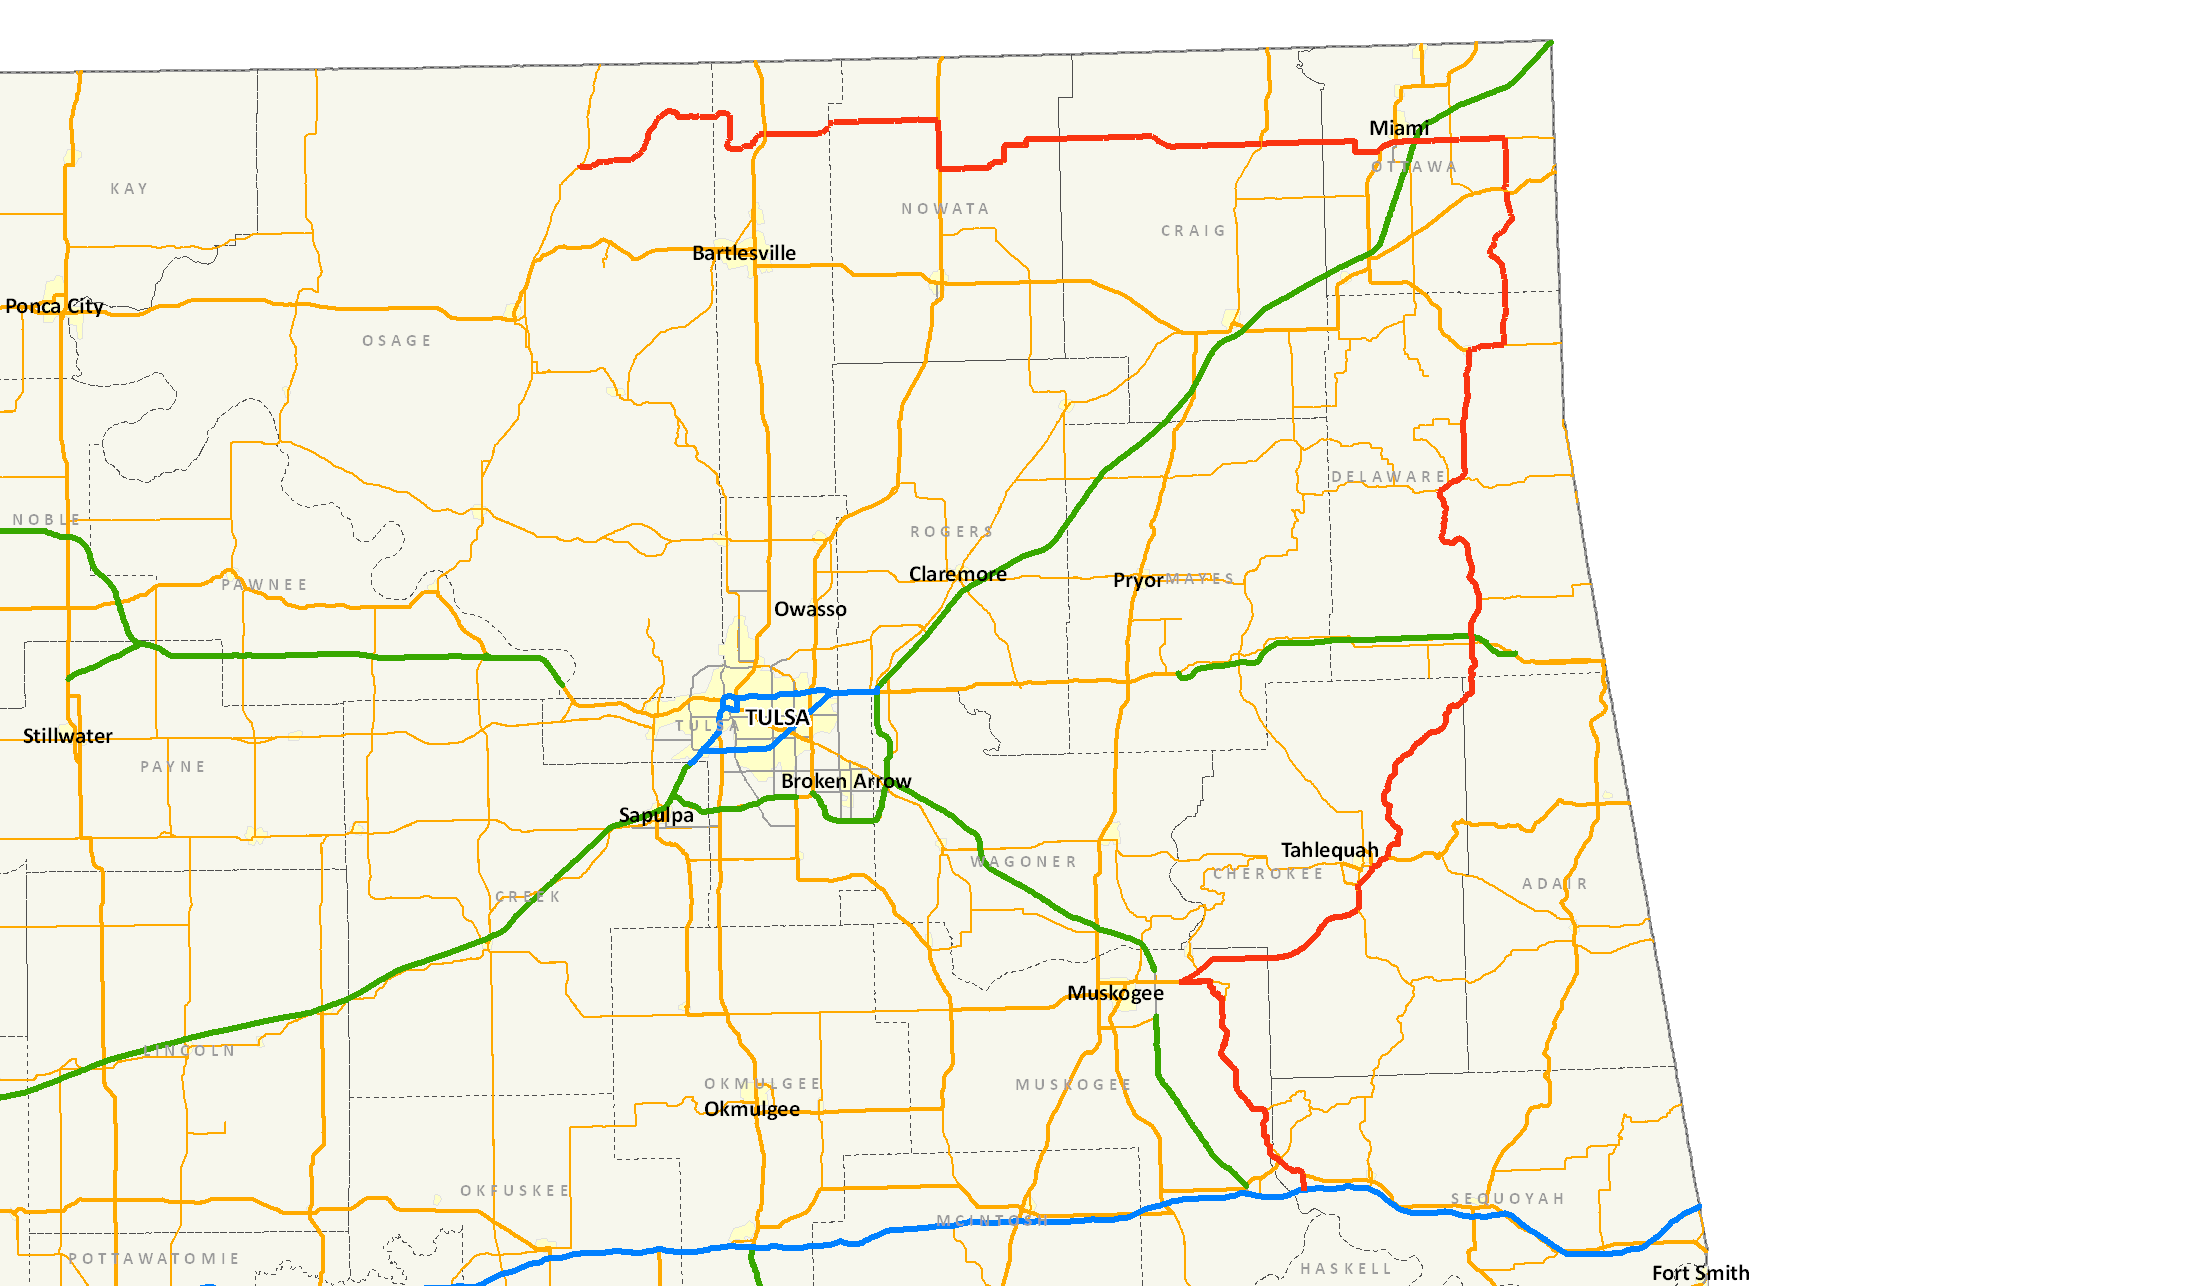 Oklahoma Highway Map Swimnovacom - Oklahoma highways map